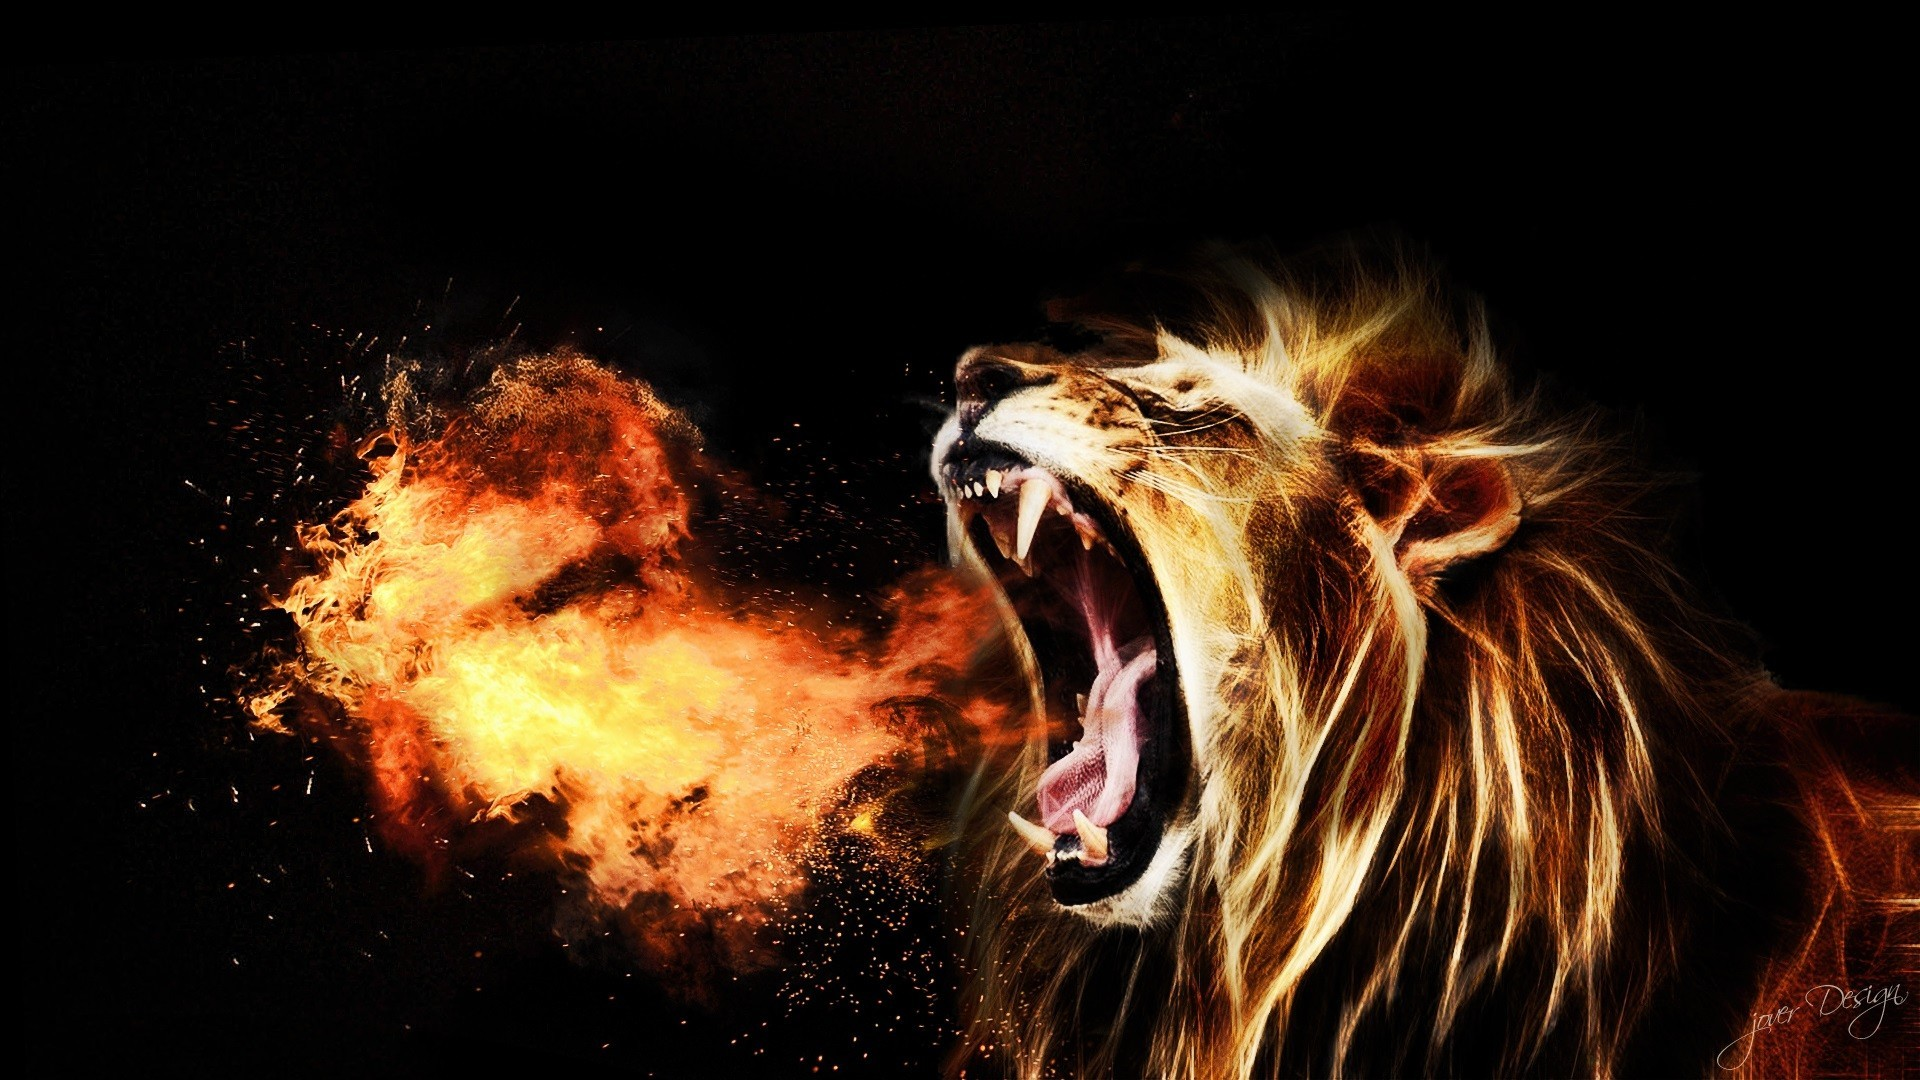 Download Lion Roaring Hd Wallpaper For Desktop Mobile: Fire Lion Wallpapers ·① WallpaperTag